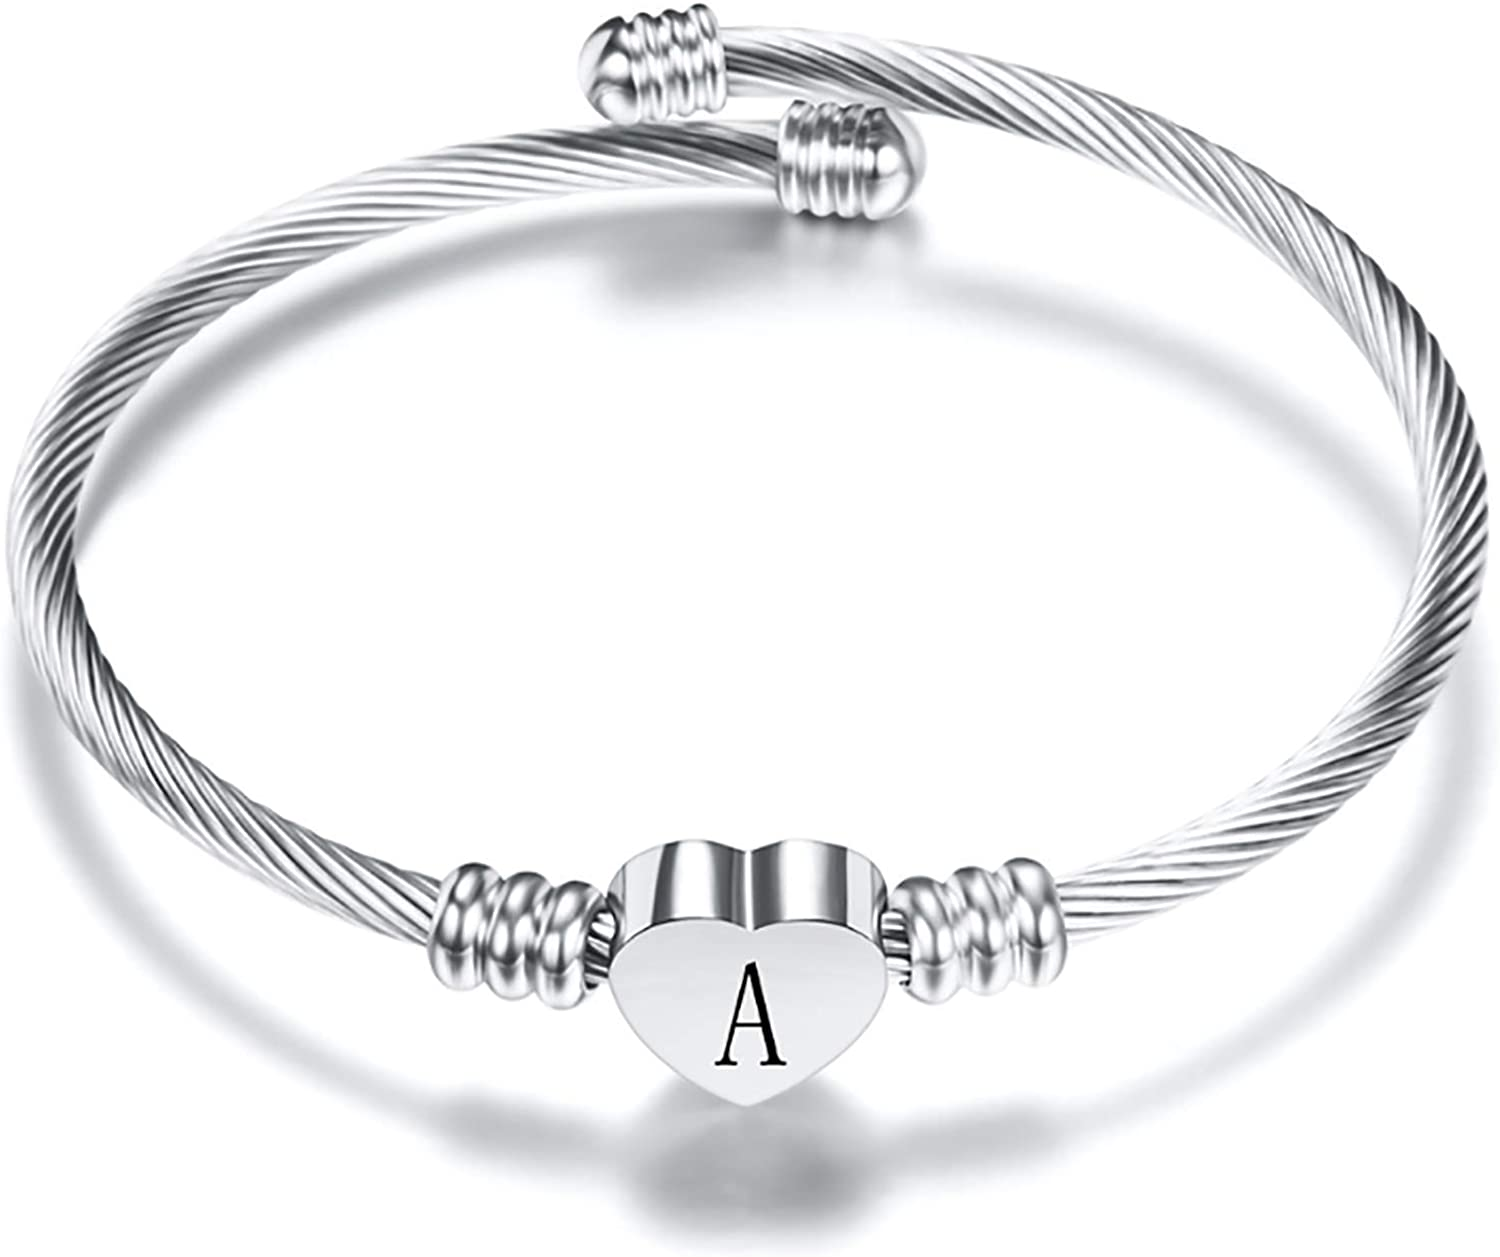 Chili Jewelry Women Girls Initial Heart A-Z Letter Cuff Bracelet Custom Name Expandable Bangle Bracelets Stainless Steel